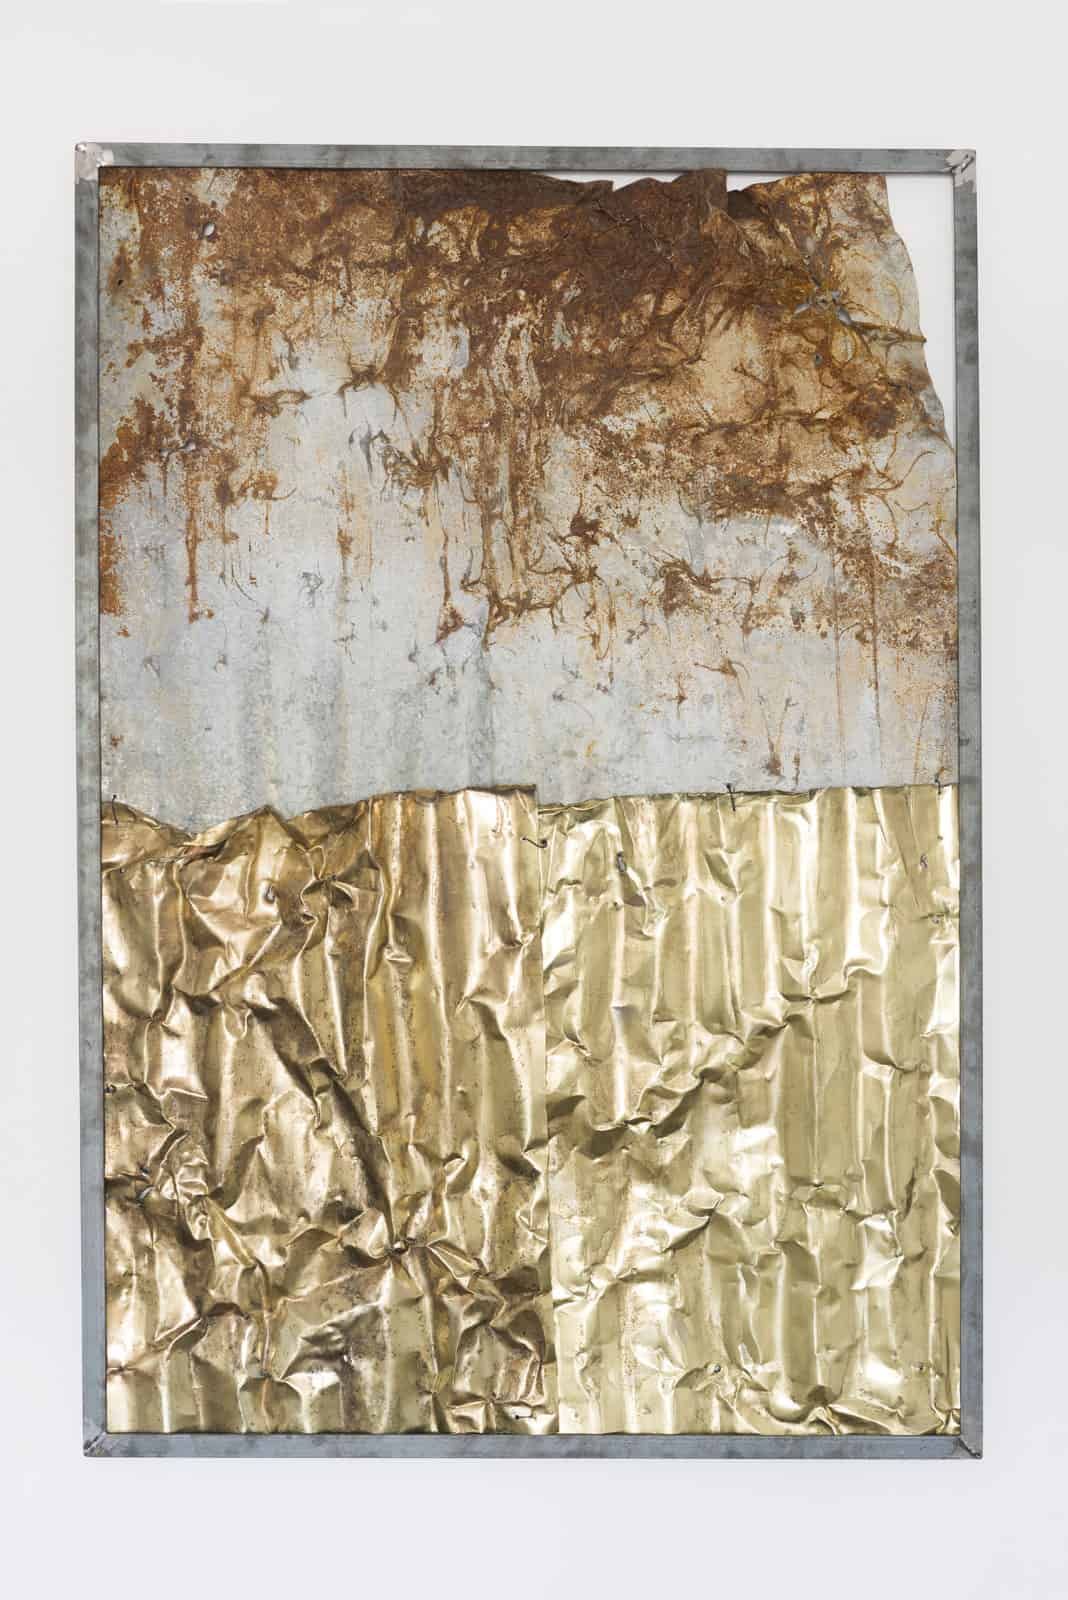 Malek Gnaoui, SC20/Ro 02, 2020, corrugated iron sheets, dismantled from homes and brass-plated. From Essaïda-Carthage series